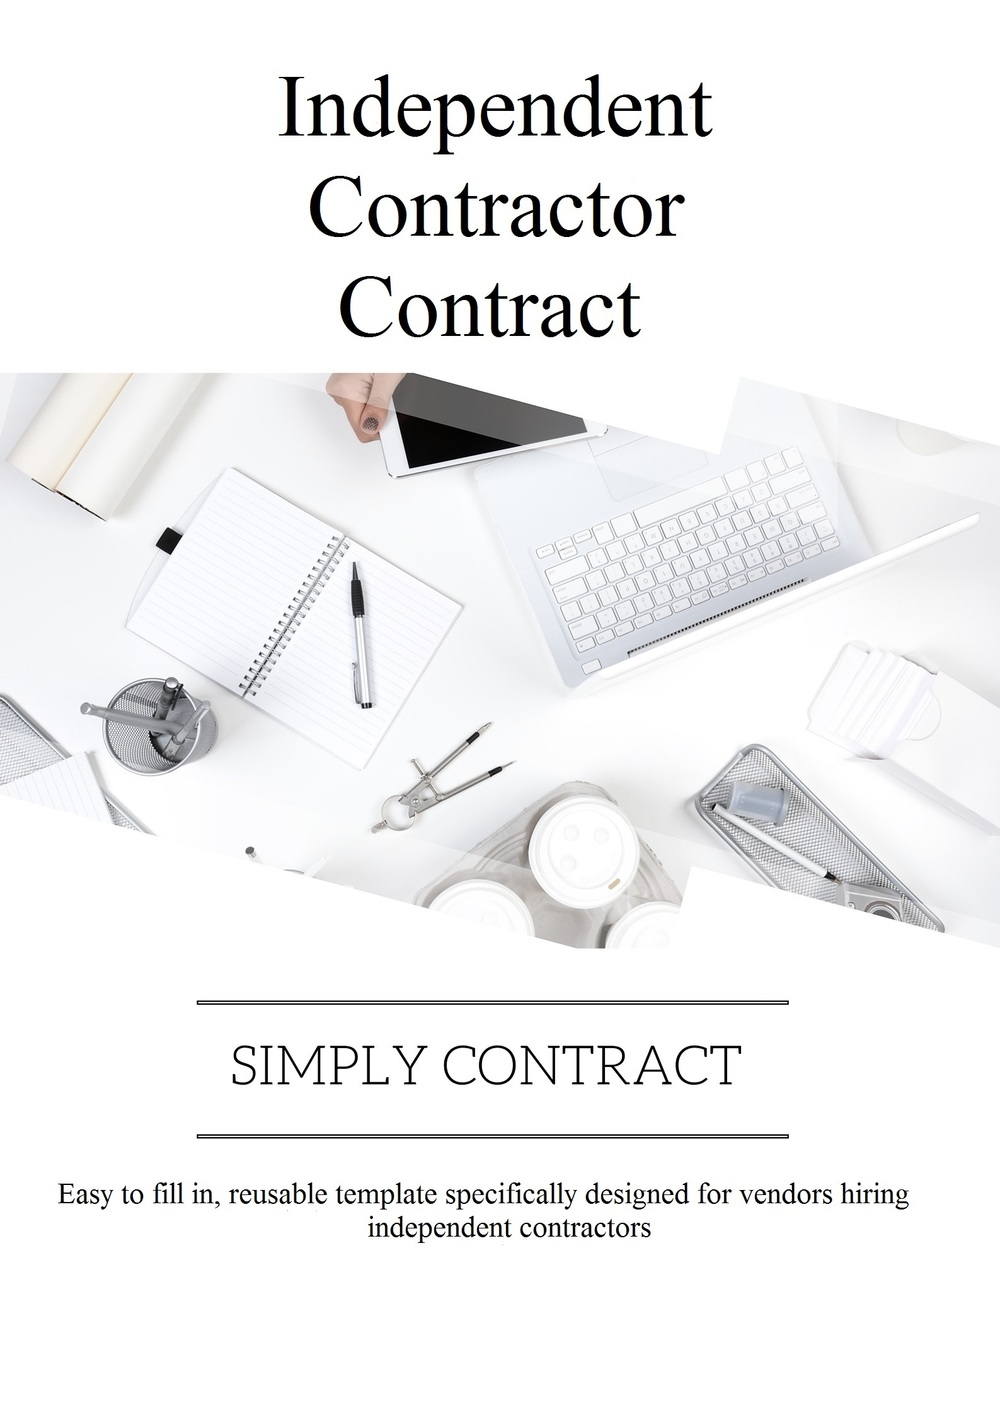 Independent Contractor Contract Simply Contract